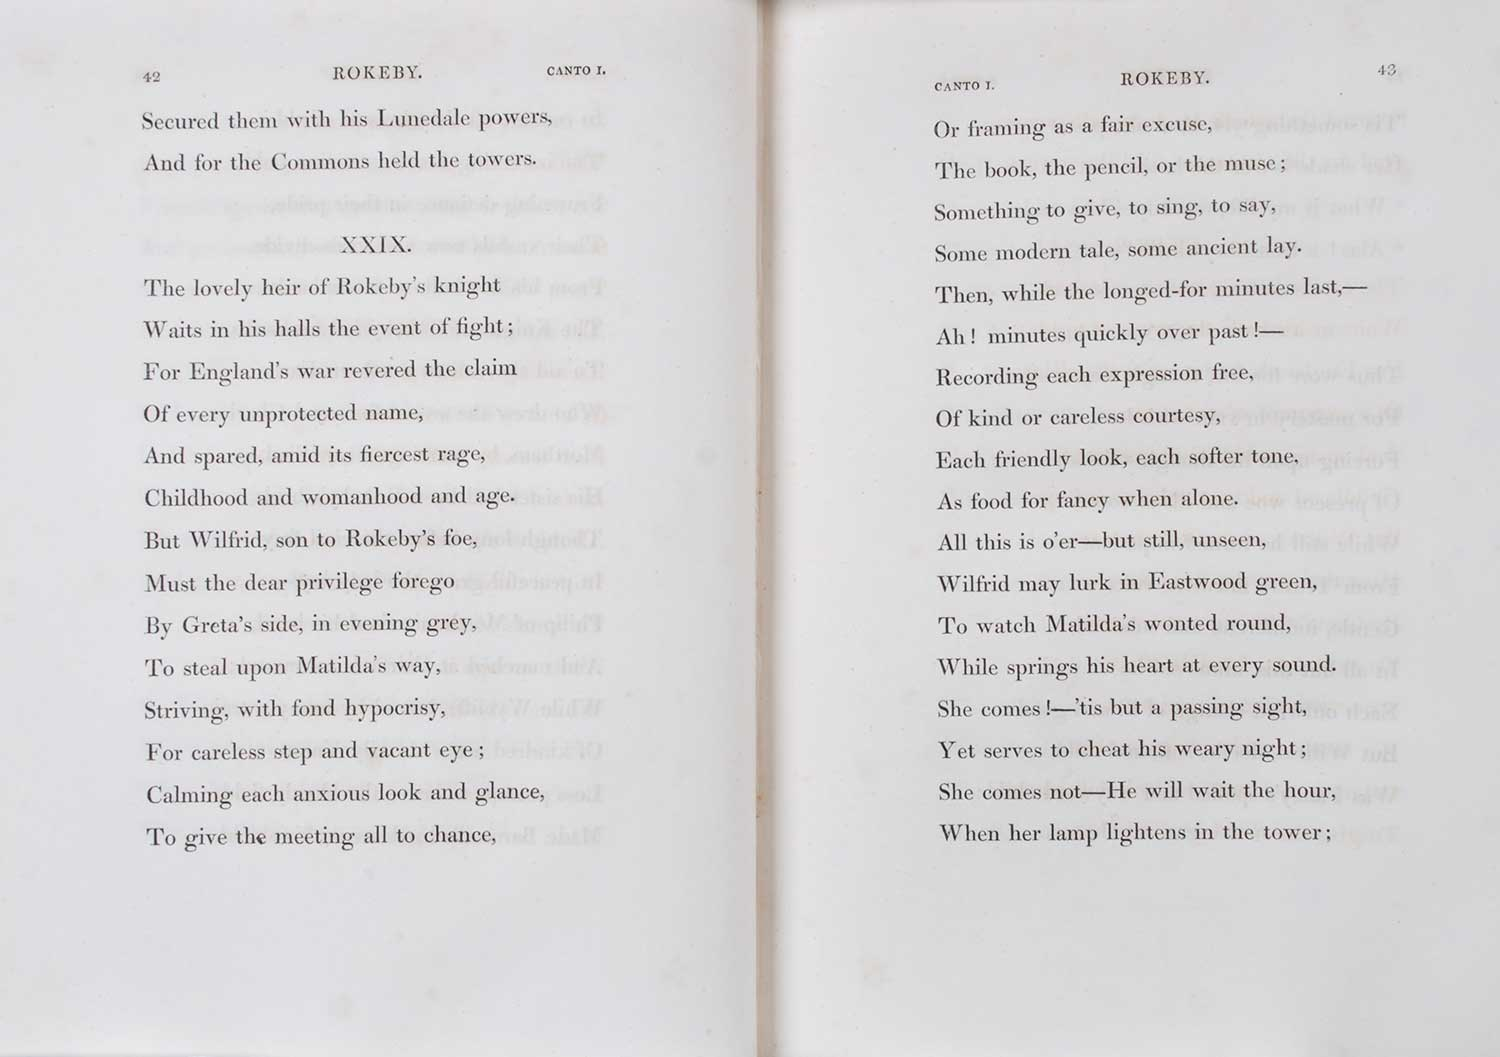 Sir Walter Scott. <em>Rokeby: a poem.</em> [1st edition]. Printed for John Ballantyne and Co., Edinburgh; and Longman, Hurst, Rees, Orme, and Brown, London; by James Ballantyne and Co., Edinburgh, 1813.